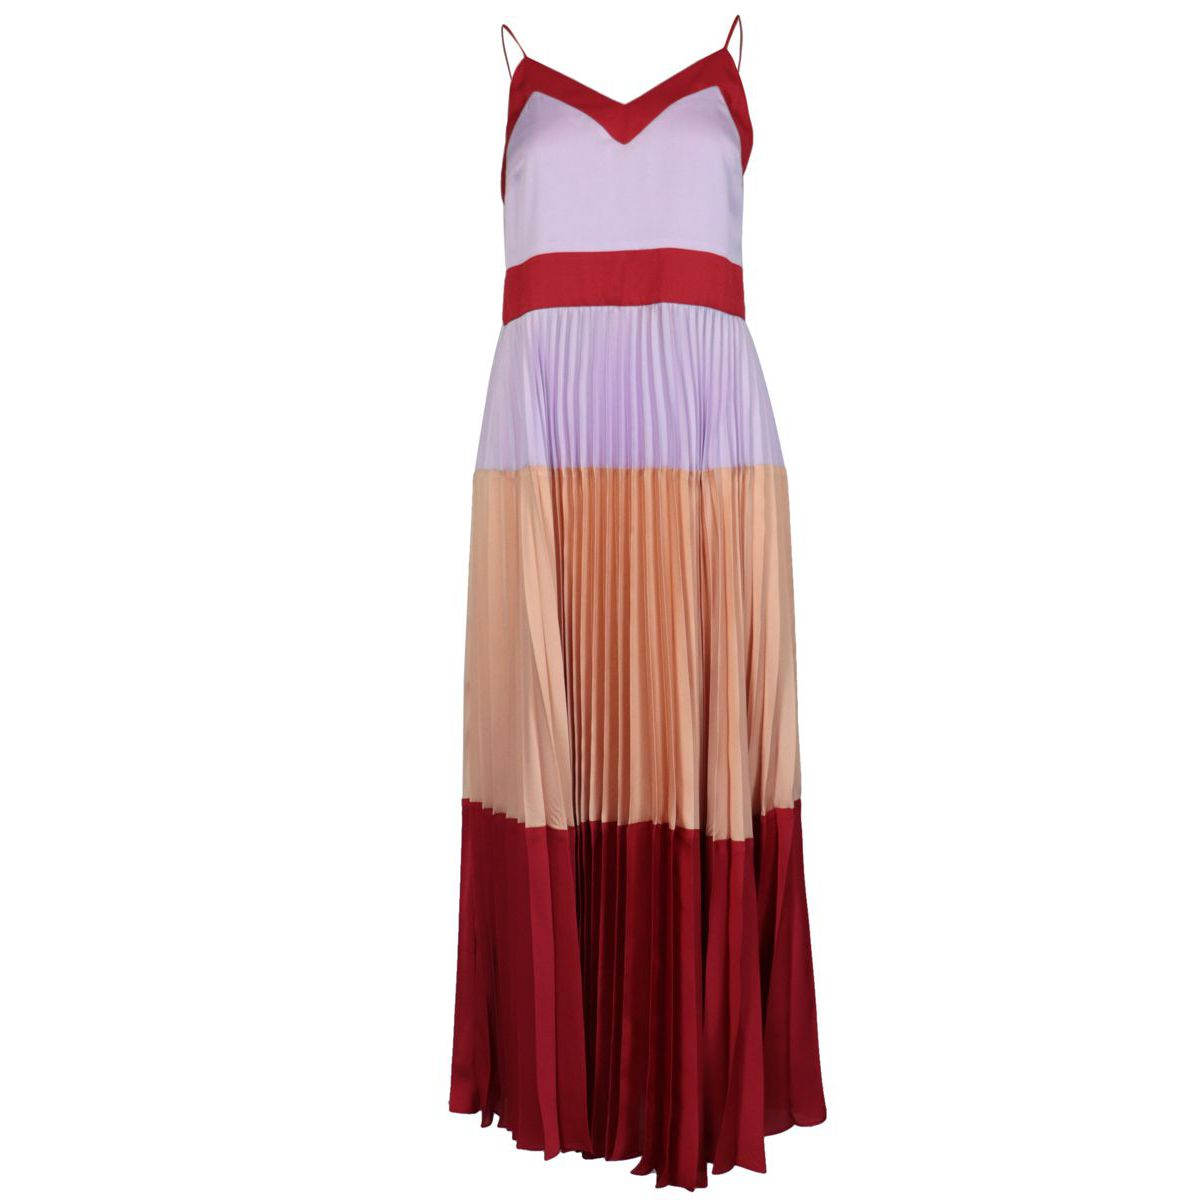 Long pleated satin petticoat dress Red / pink Twin-Set